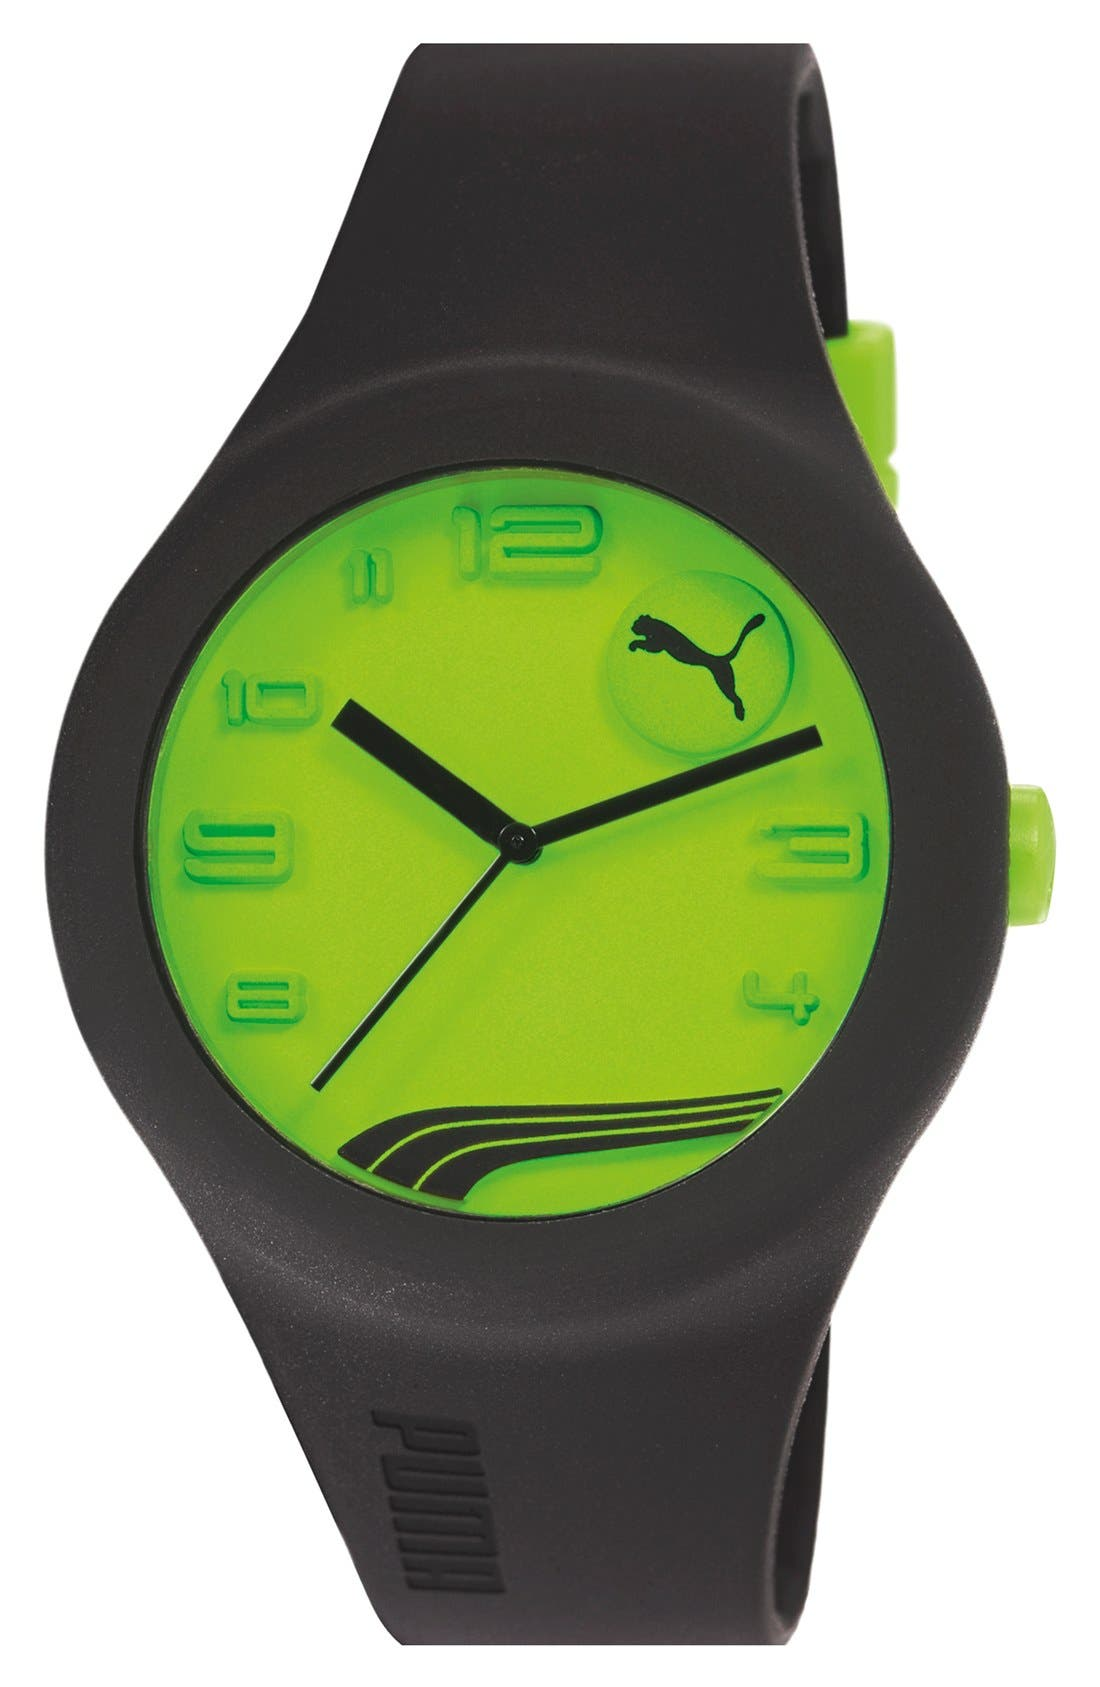 Main Image - PUMA 'Form' Neon Dial Silicone Strap Watch, 44mm